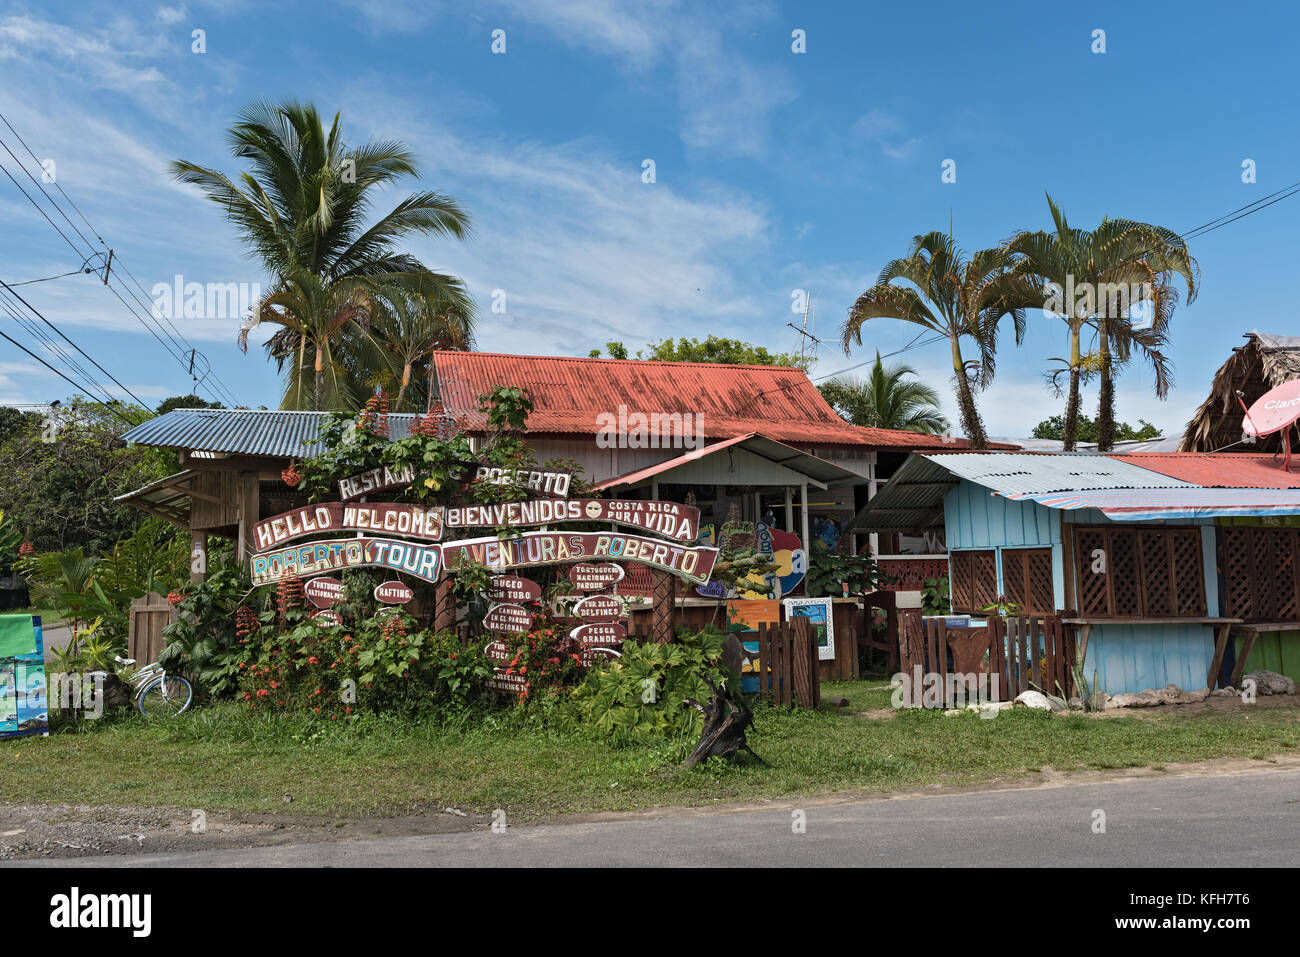 Wooden House in Puerto Viejo, Costa Rica Stockbild